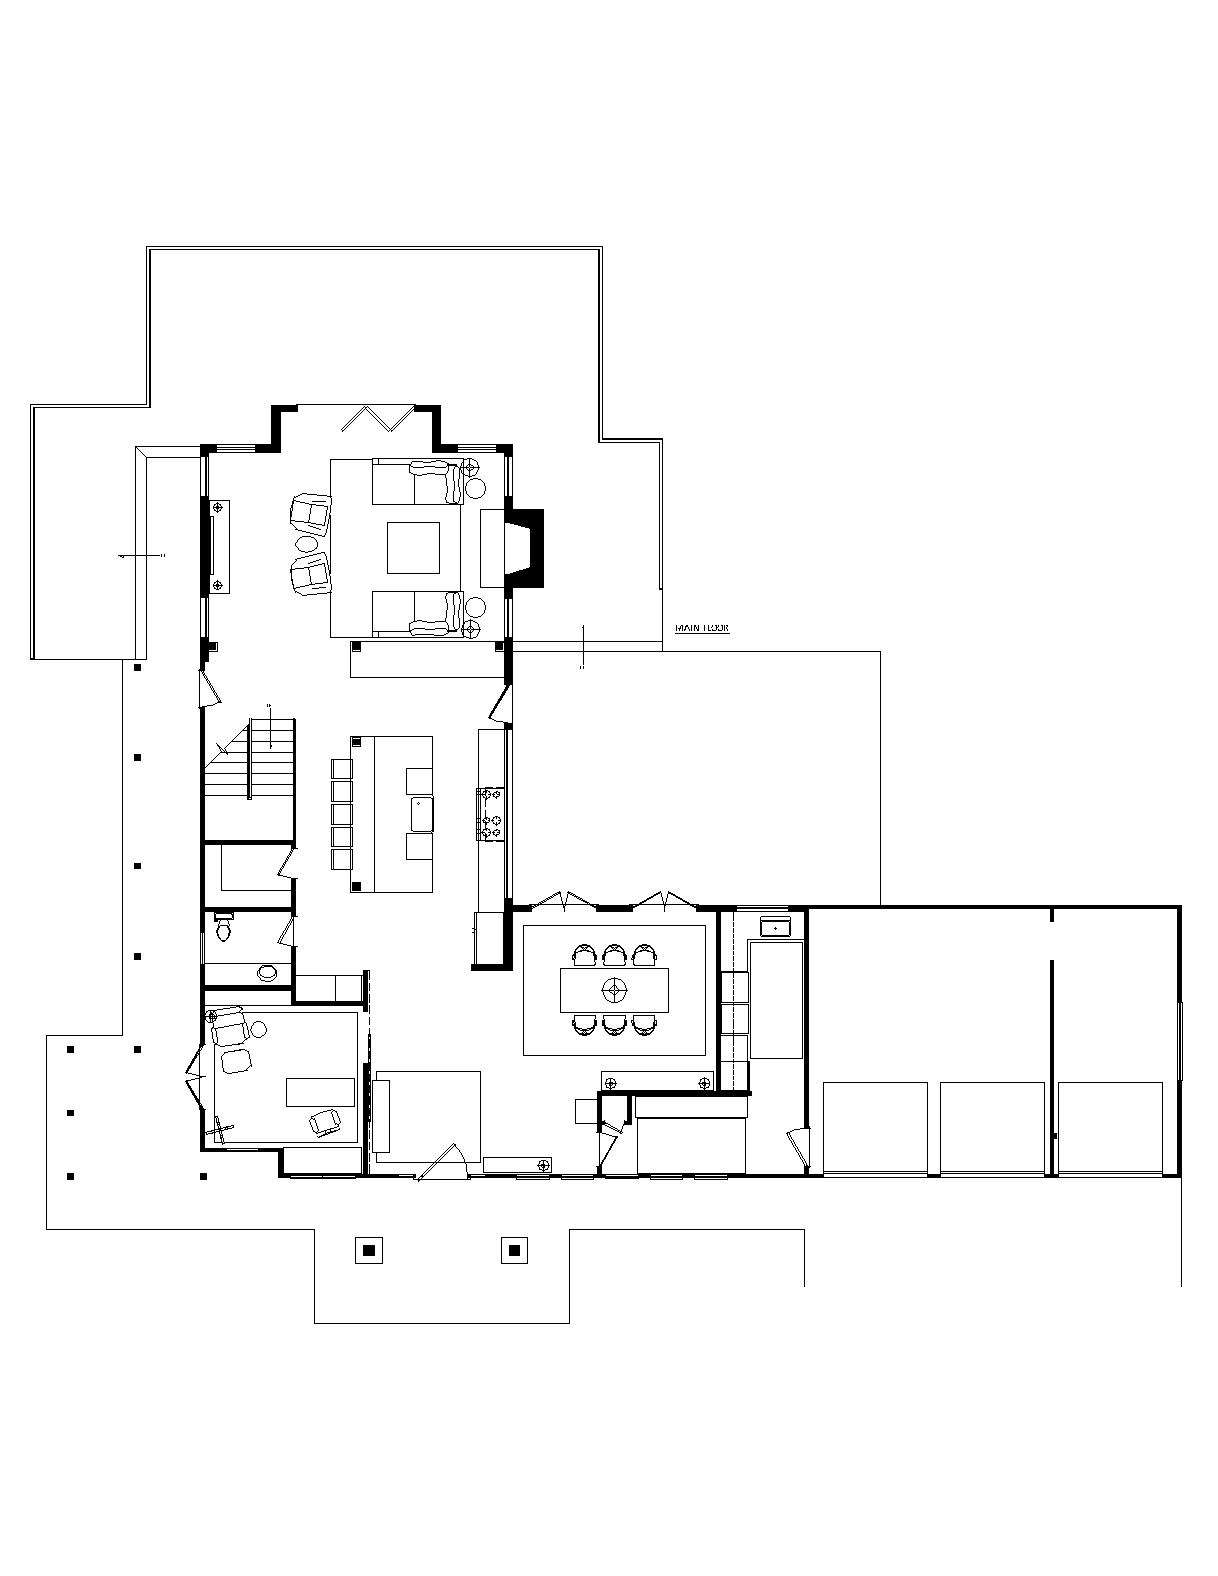 floor plan, first floor of a remodeled ralph anderson 1966 home in bellevue, wa 25